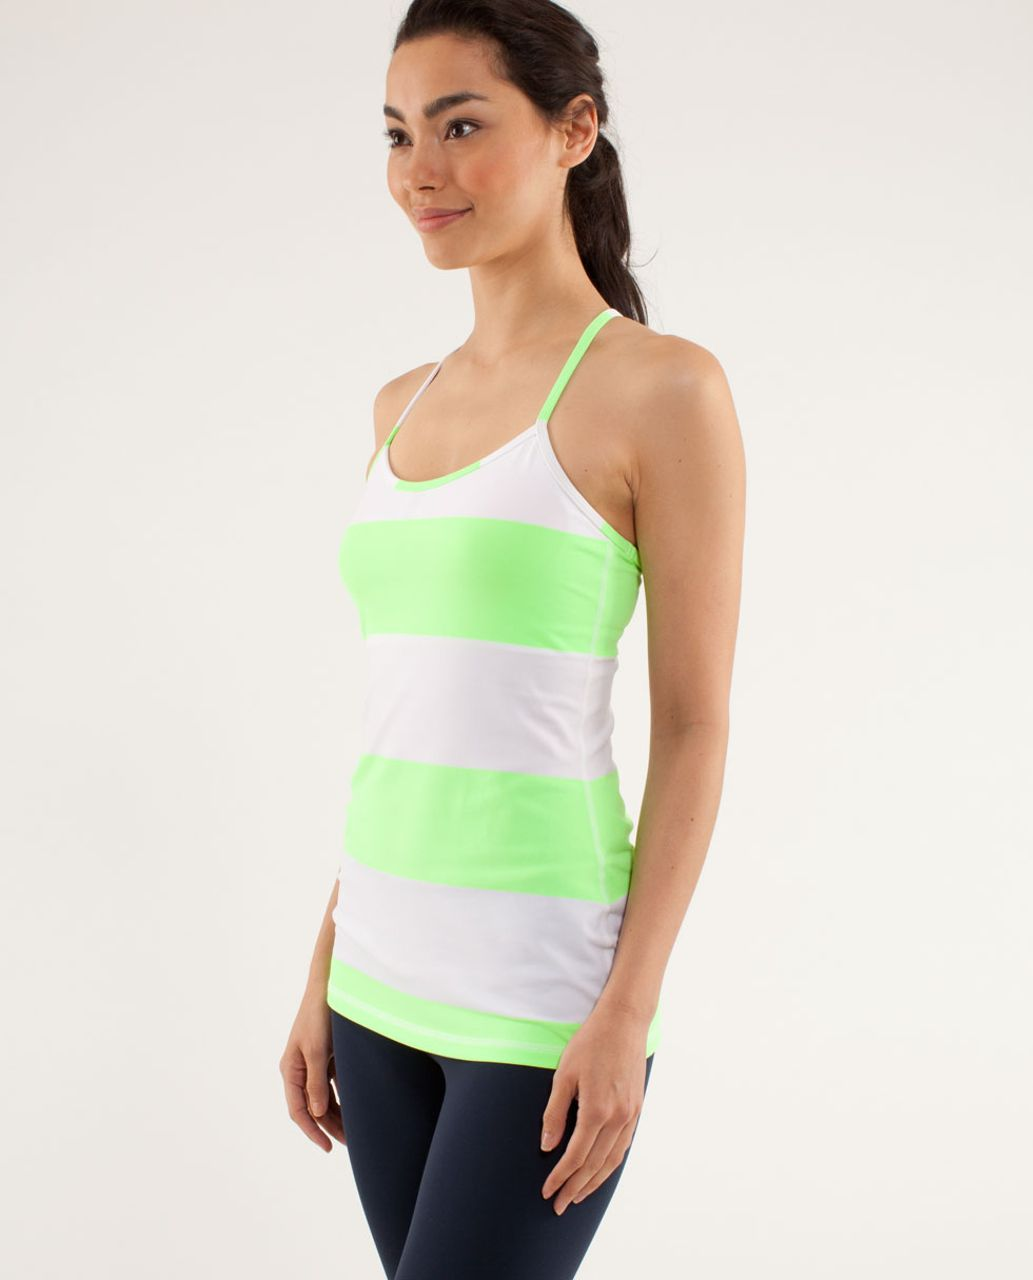 Lululemon Power Y Tank *Luon Light - Bold Stripe Zippy Green